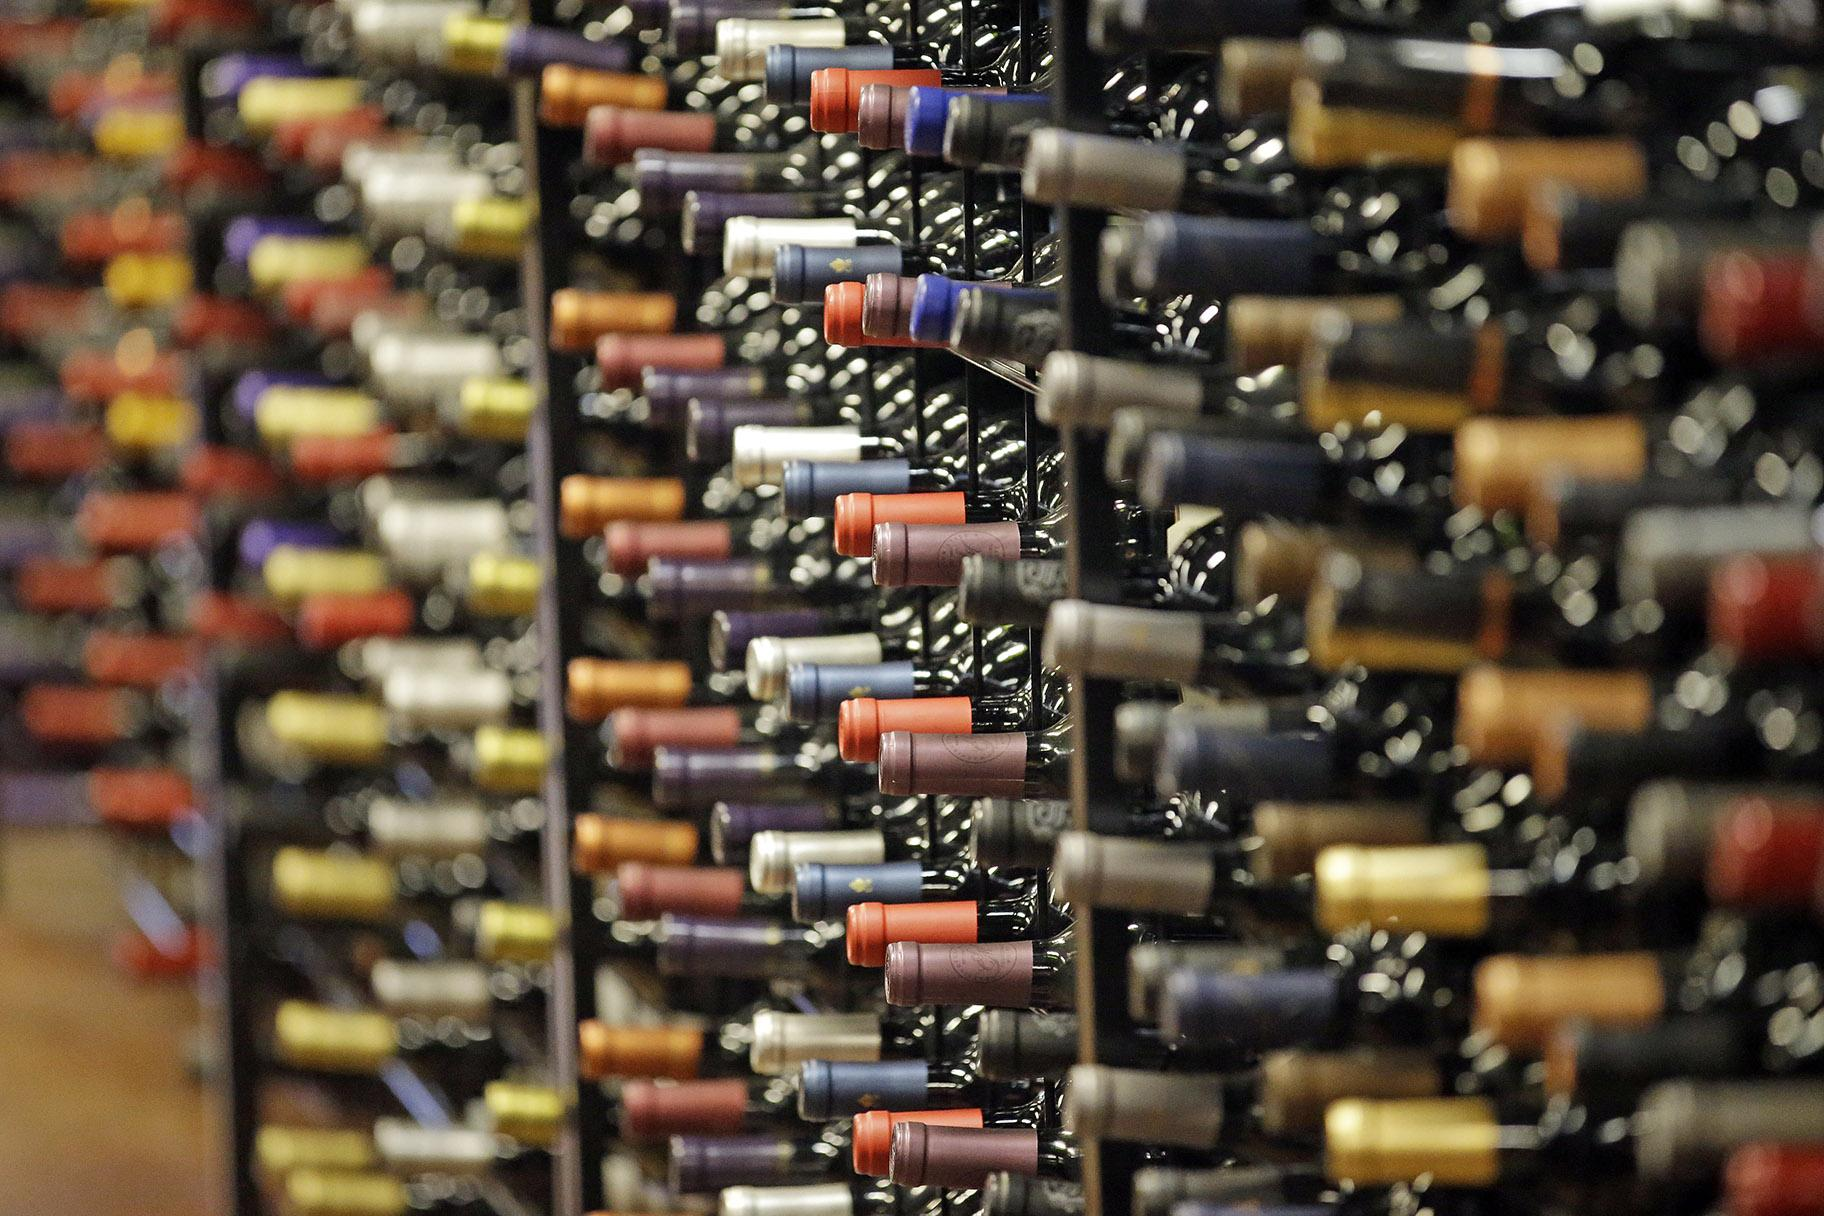 In this June 16, 2016, file photo, bottles of wine are displayed during a tour of a state liquor store, in Salt Lake City. According to federal health statistics, Americans are drinking more now than when Prohibition was enacted a century earlier. (AP Photo / Rick Bowmer, File)